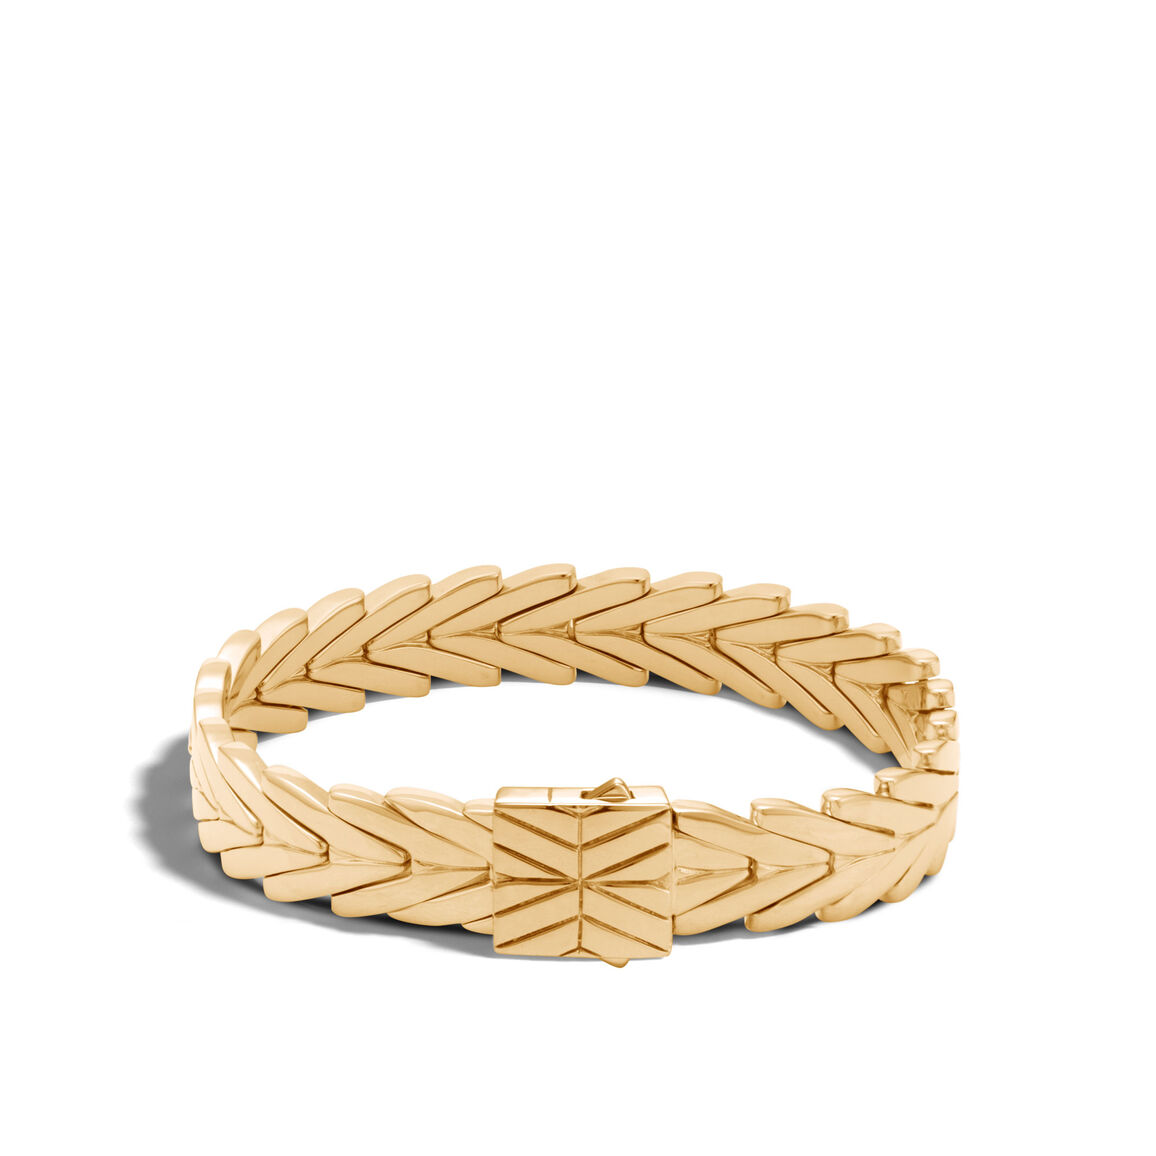 Modern Chain 11MM Bracelet in 18K Gold